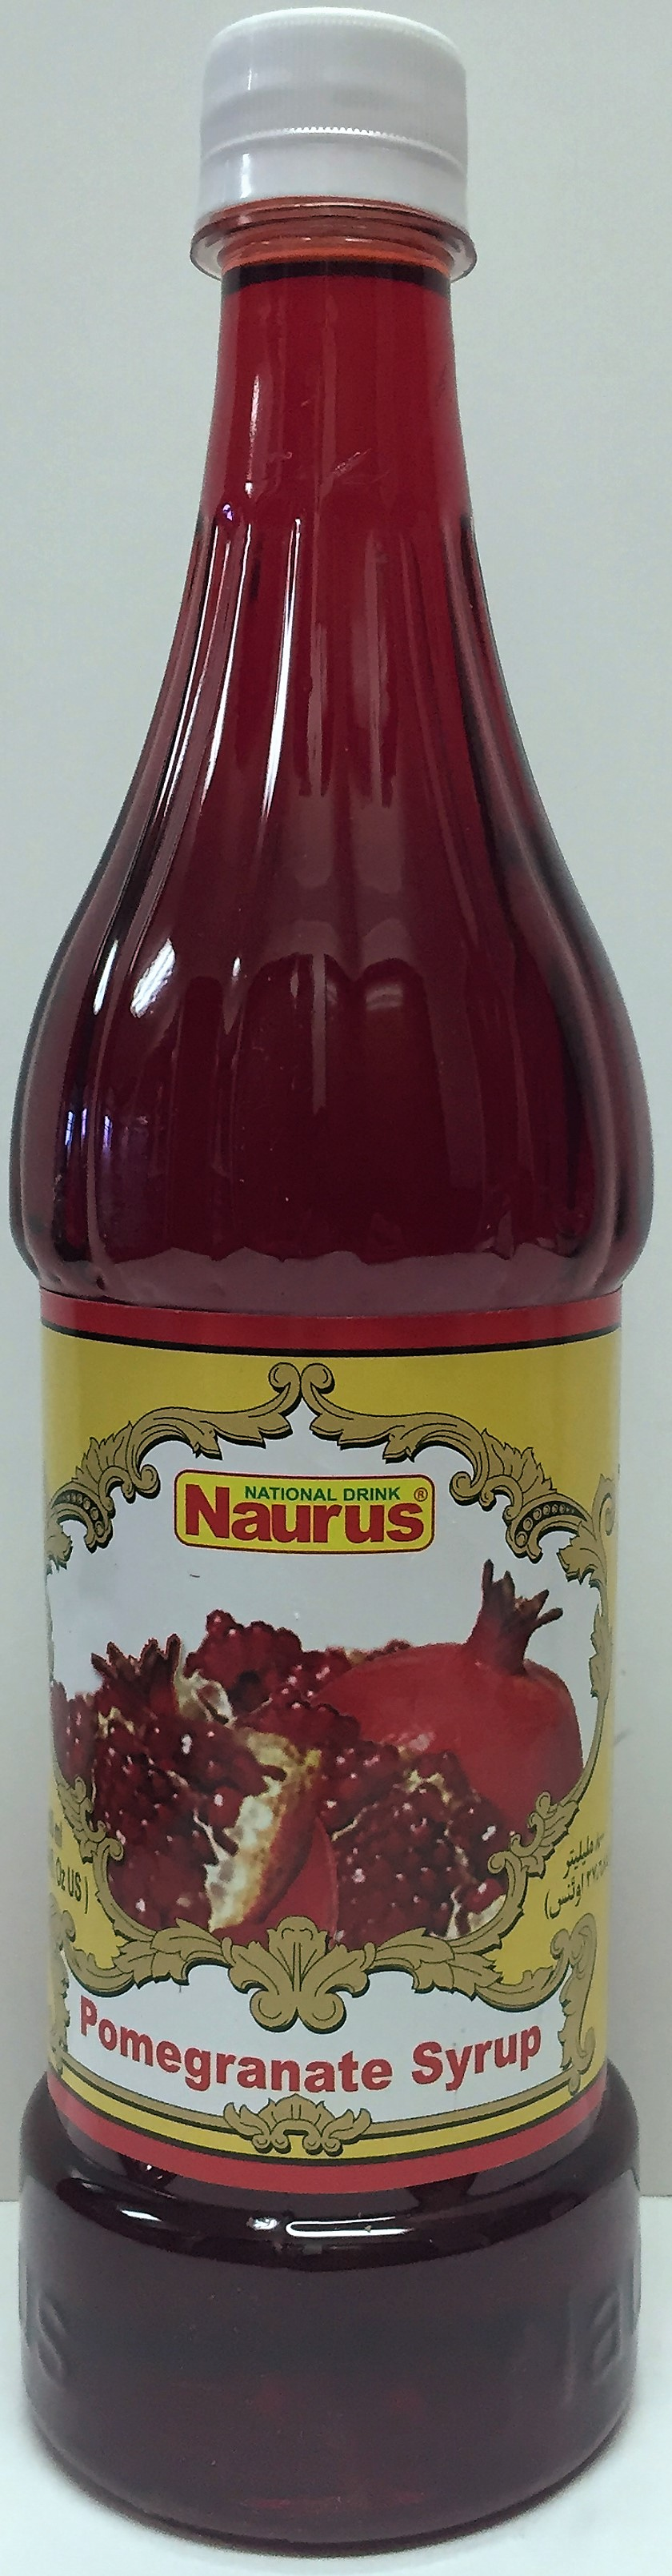 Home / Beverages / Drink Mixes / NAURUS POMEGRANATE SYRUP